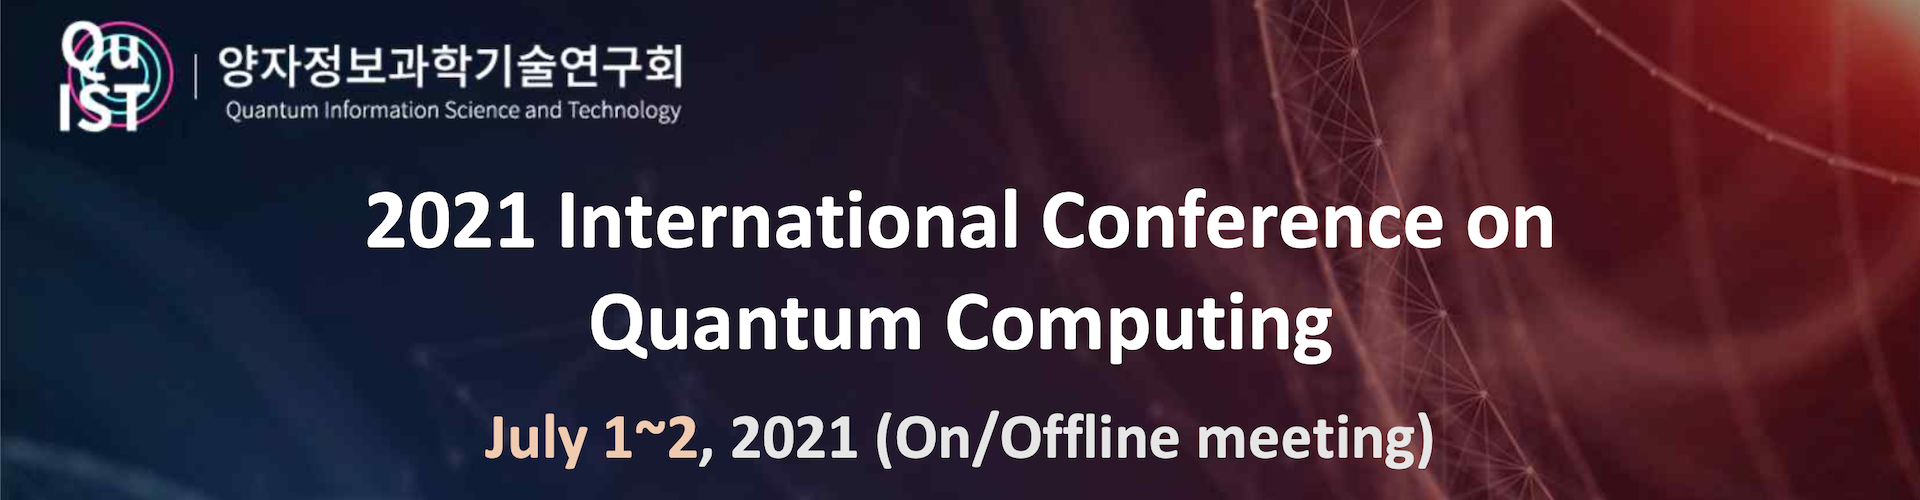 2021 International Conference on Quantum Computing July 1~2, 2021(On/Online meeting)